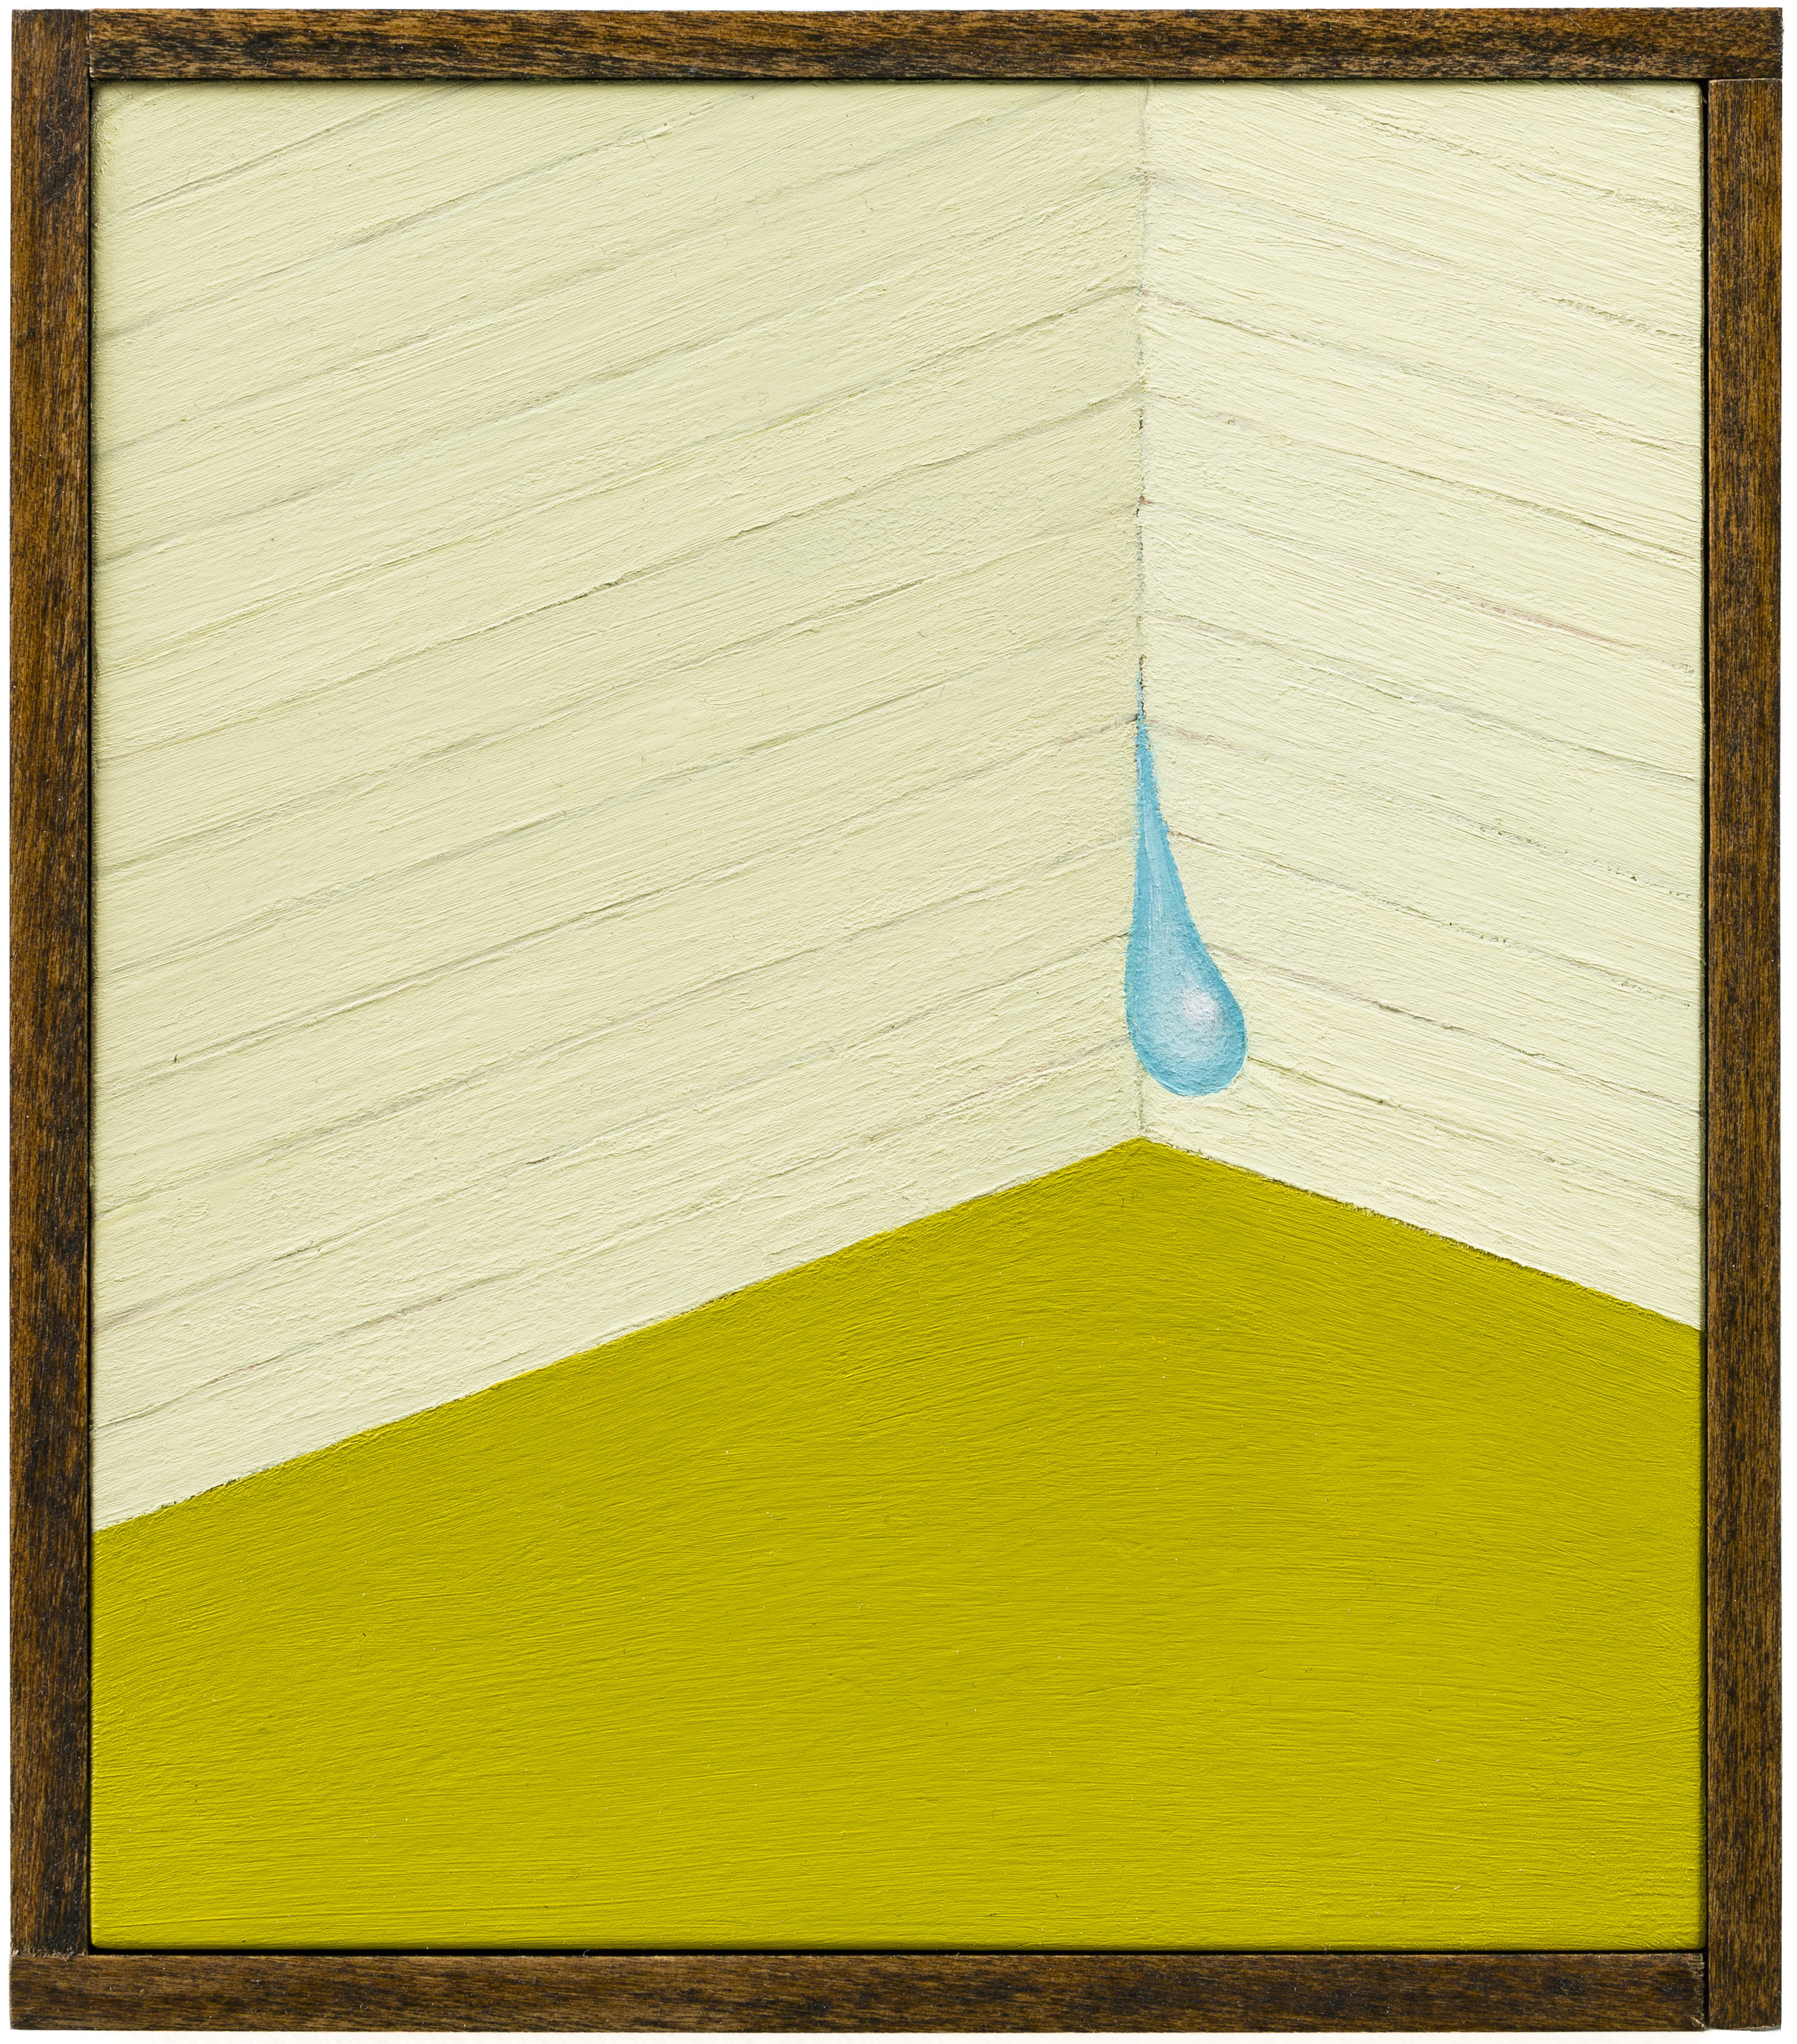 Pressure Drop , 2018 Oil on board, wood frame 6.5 x 7.5 in